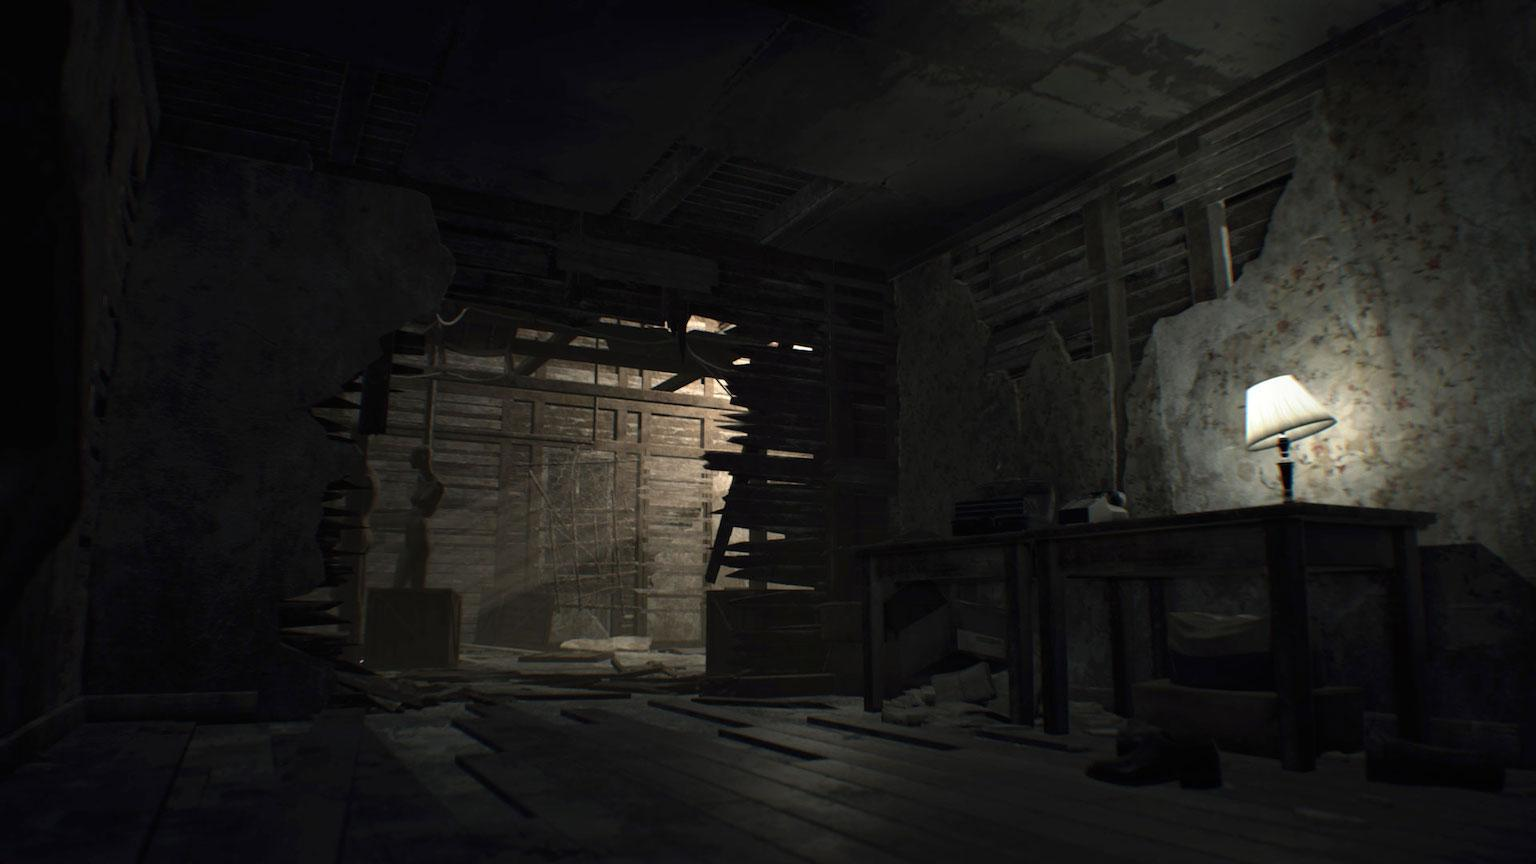 New Resident Evil 7 details include trailer and demo update - SlashGear